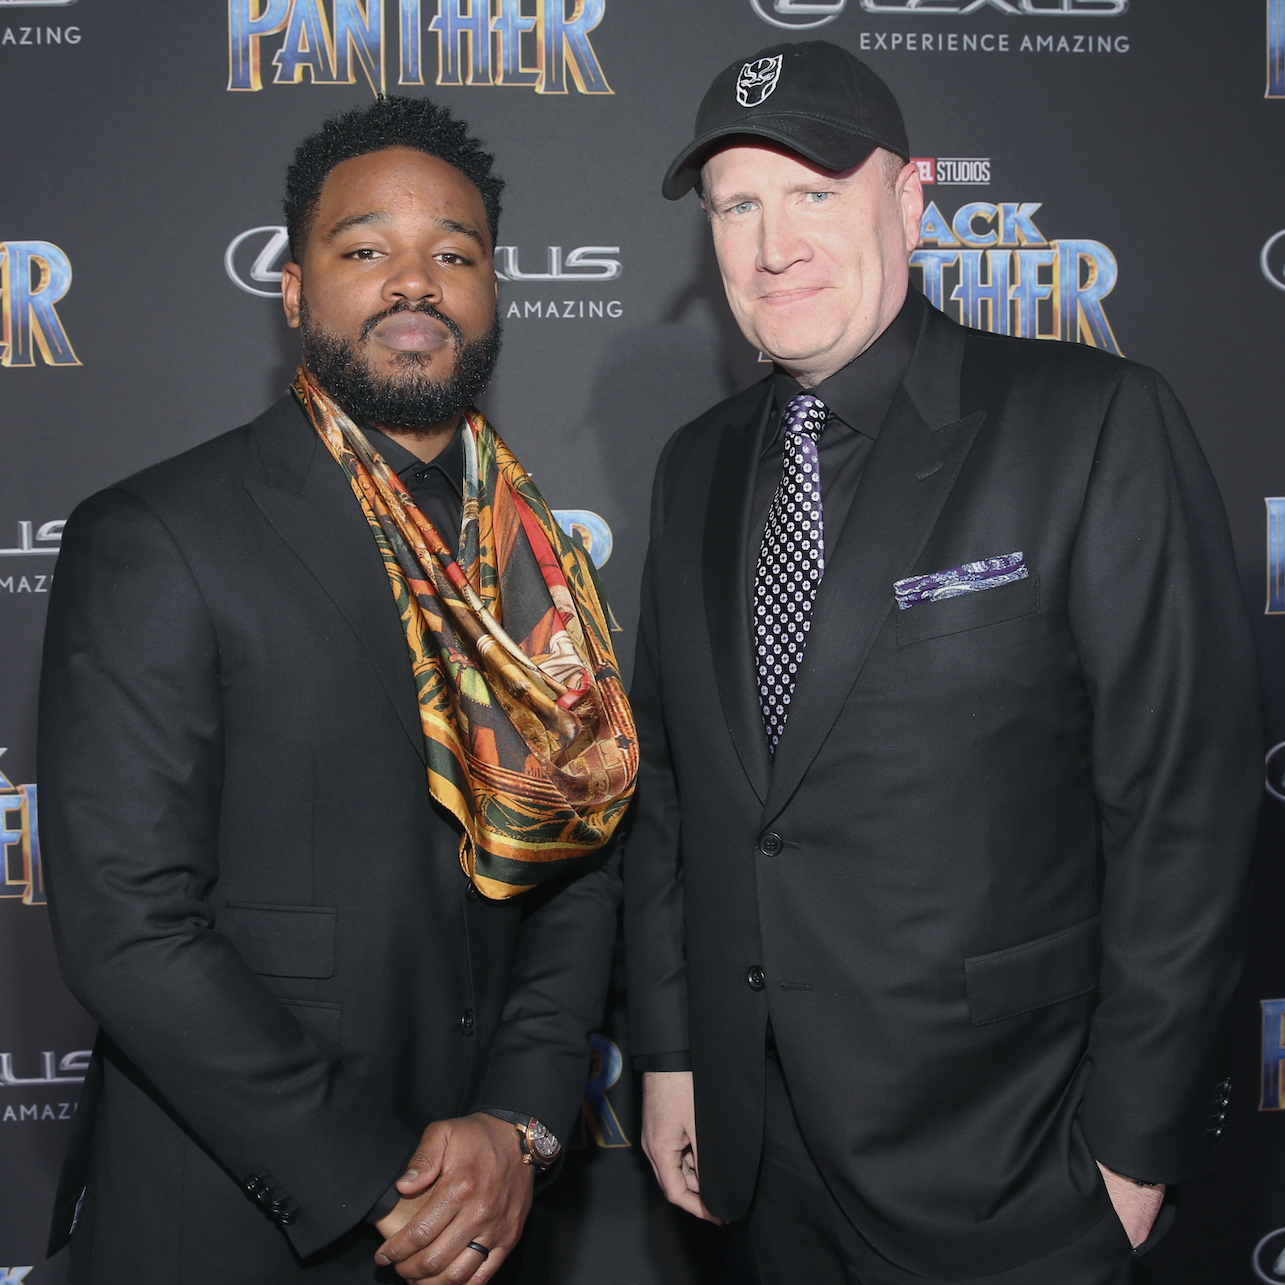 Marvel's Kevin Feige wants Black Panther director Ryan Coogler to give speech if the film wins at the Oscars